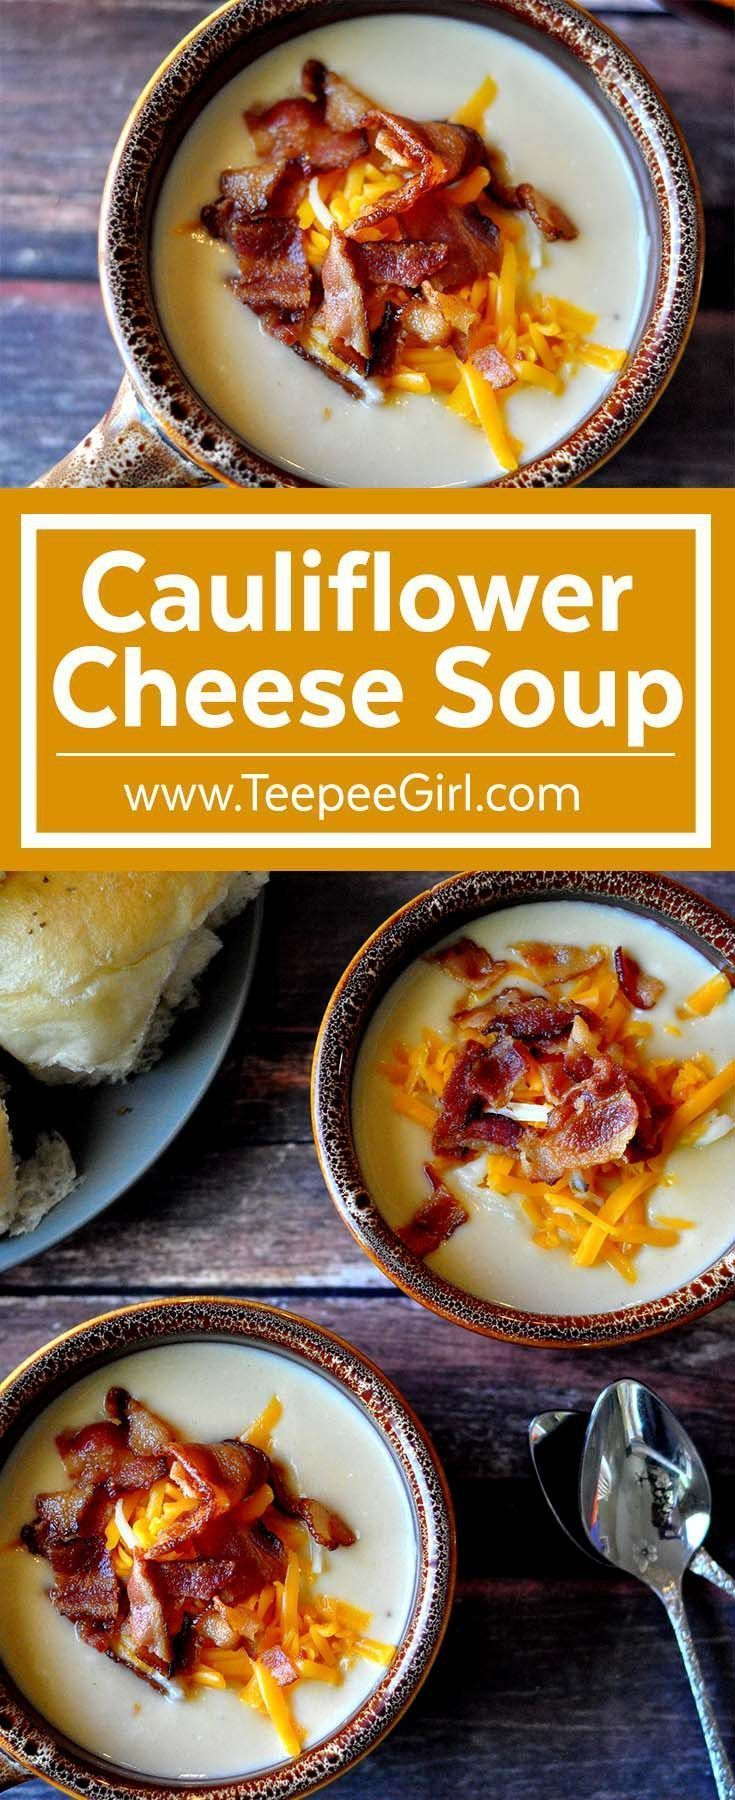 This cauliflower cheese soup is heaven in a bowl! Creamy, cheesy, and totally satisfying, this soup will make you a super star at your dinner table or any social event. Get it today at http://www.TeepeeGirl.com.